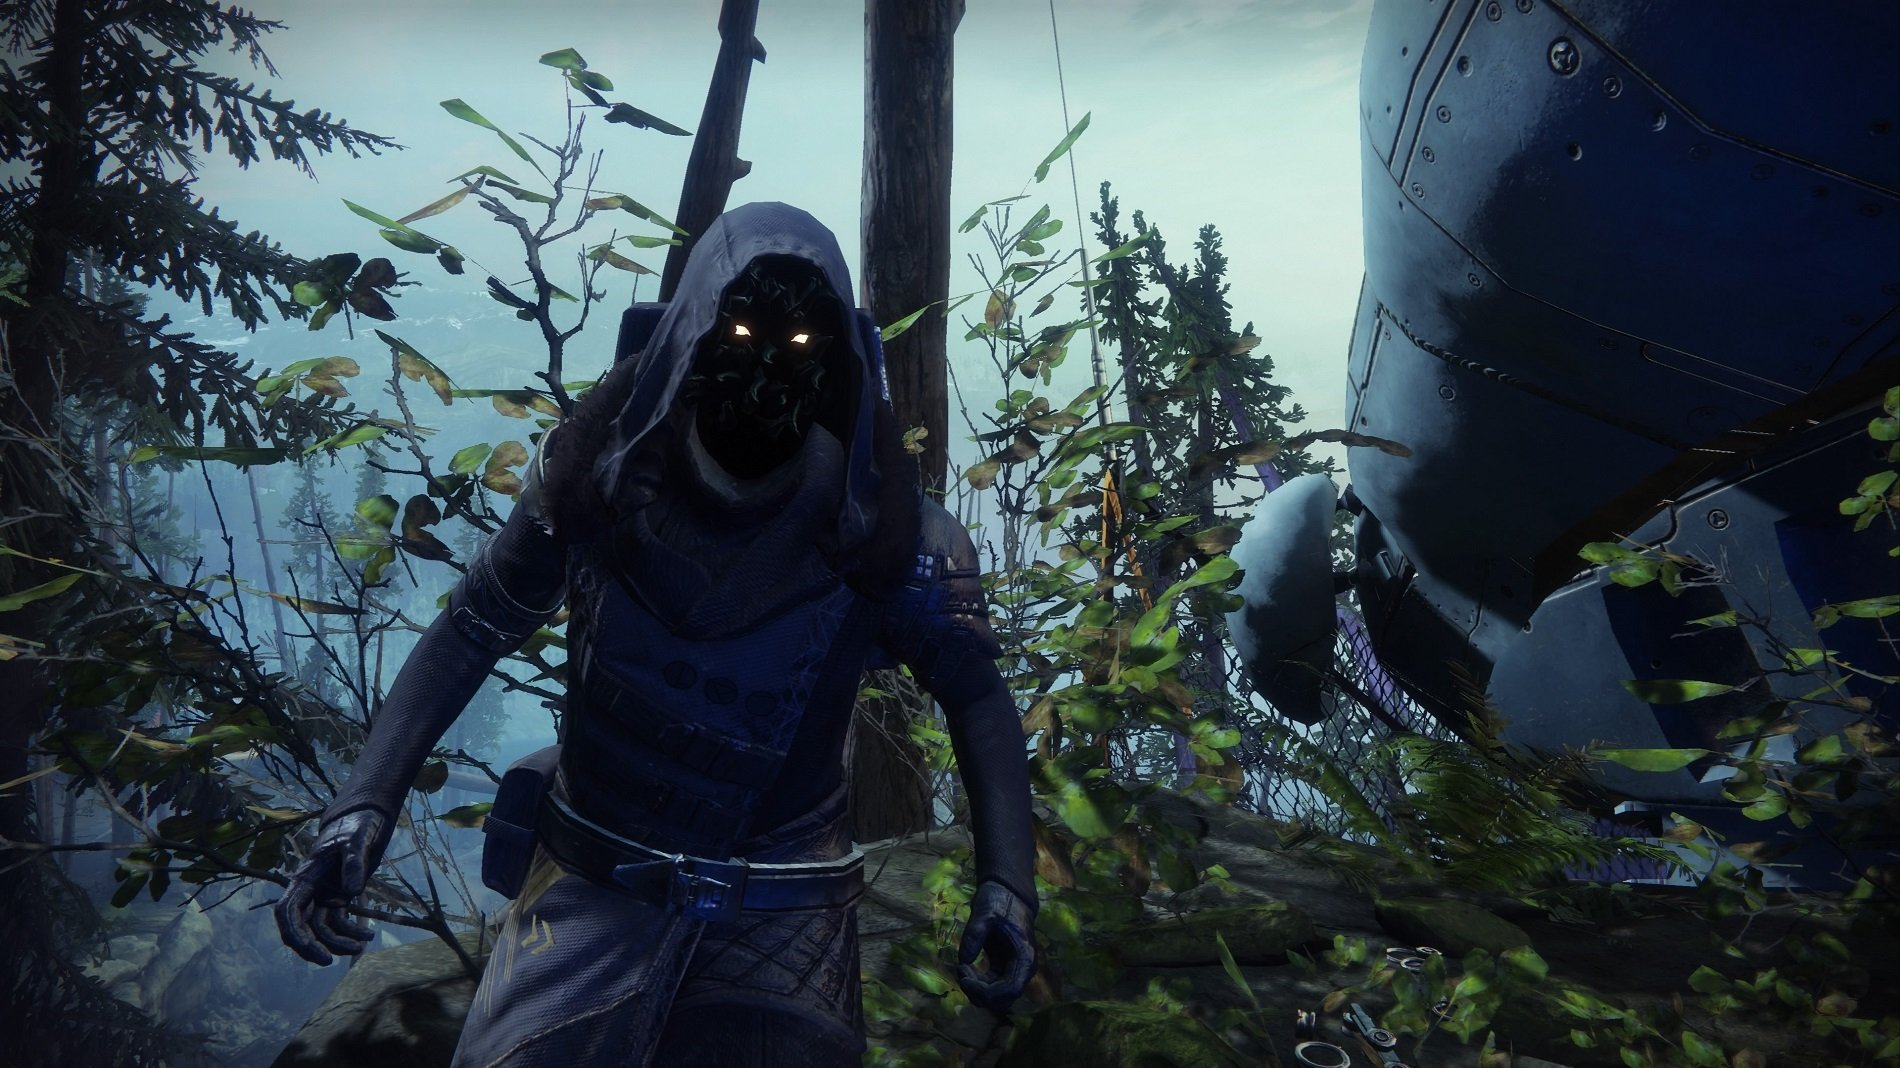 Where to find Xur in Destiny 2 - November 15, 2019